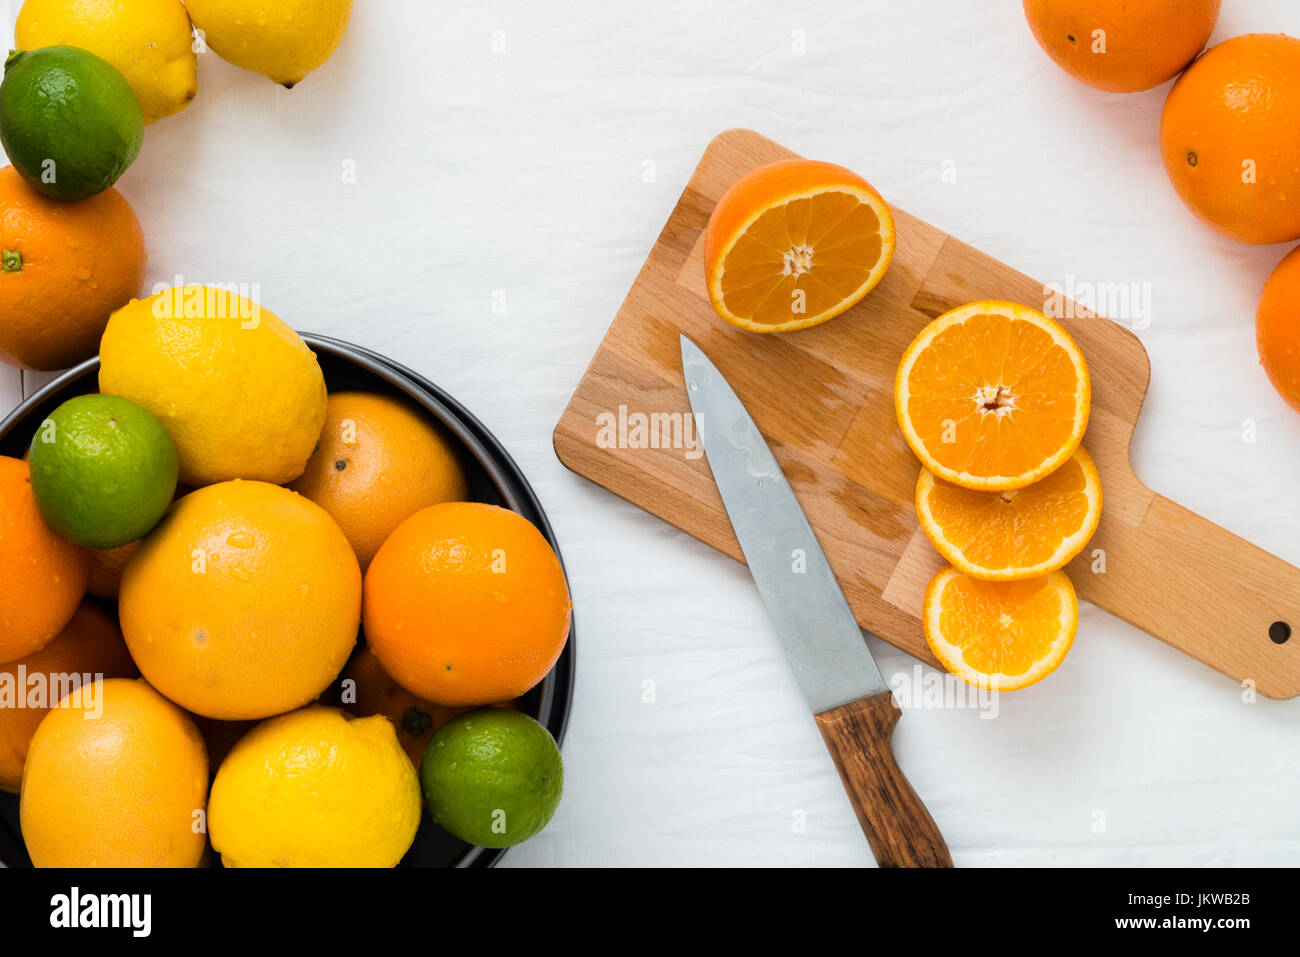 Bowl with different types of whole citruses: oranges, grapefruits, limes and lemons, and wooden board with slices - Stock Image